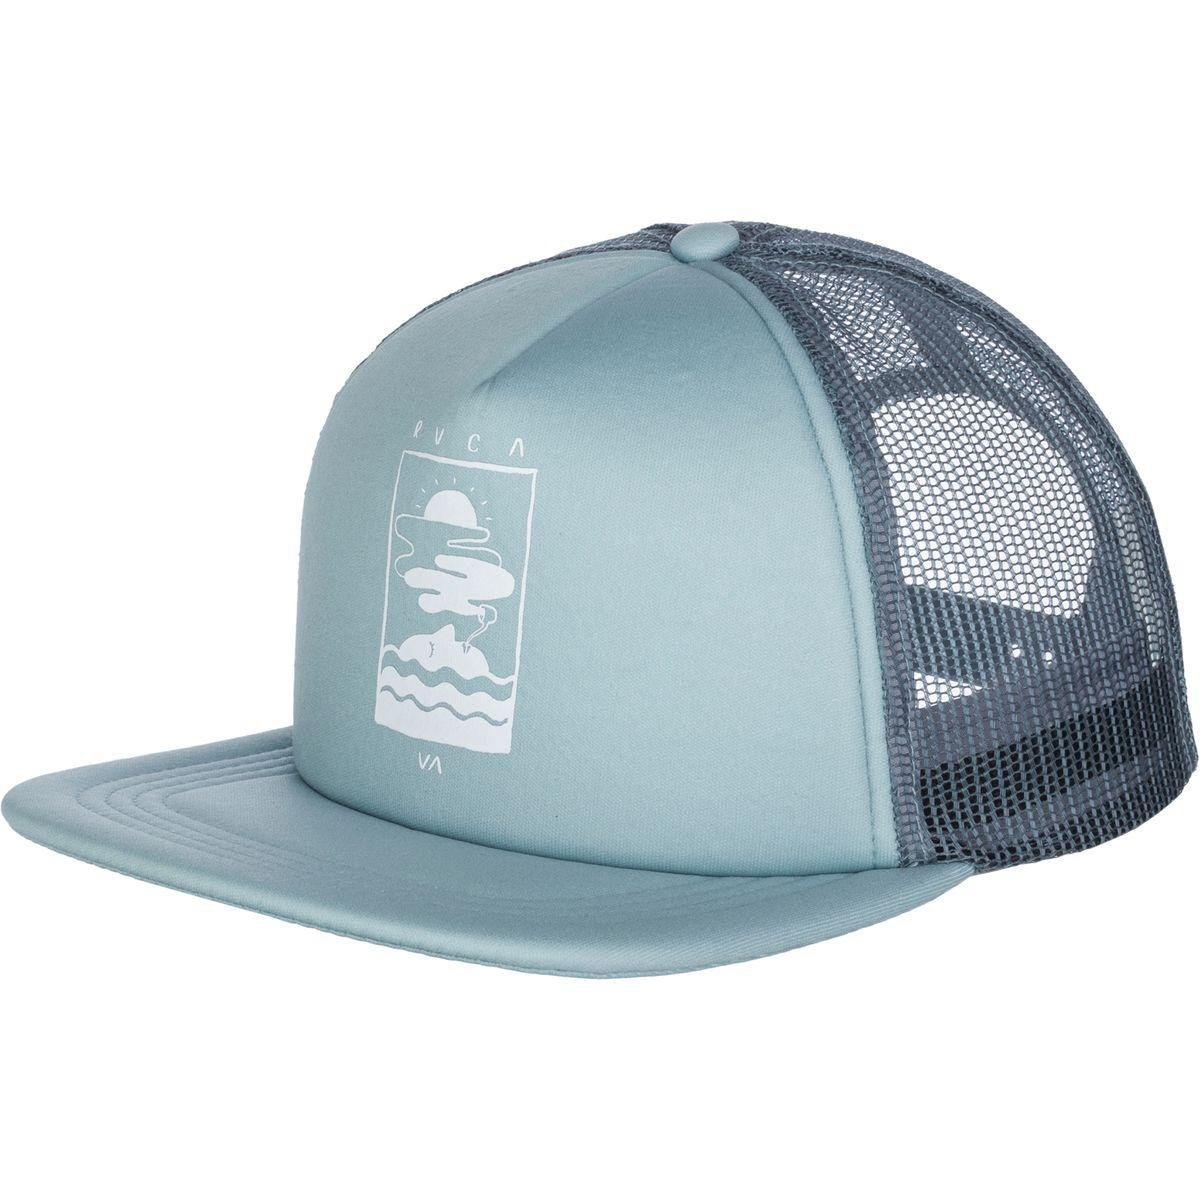 pick up 5e04d 1992a ... ebay lyst rvca snooze trucker hat in blue for men b42c6 85b6a